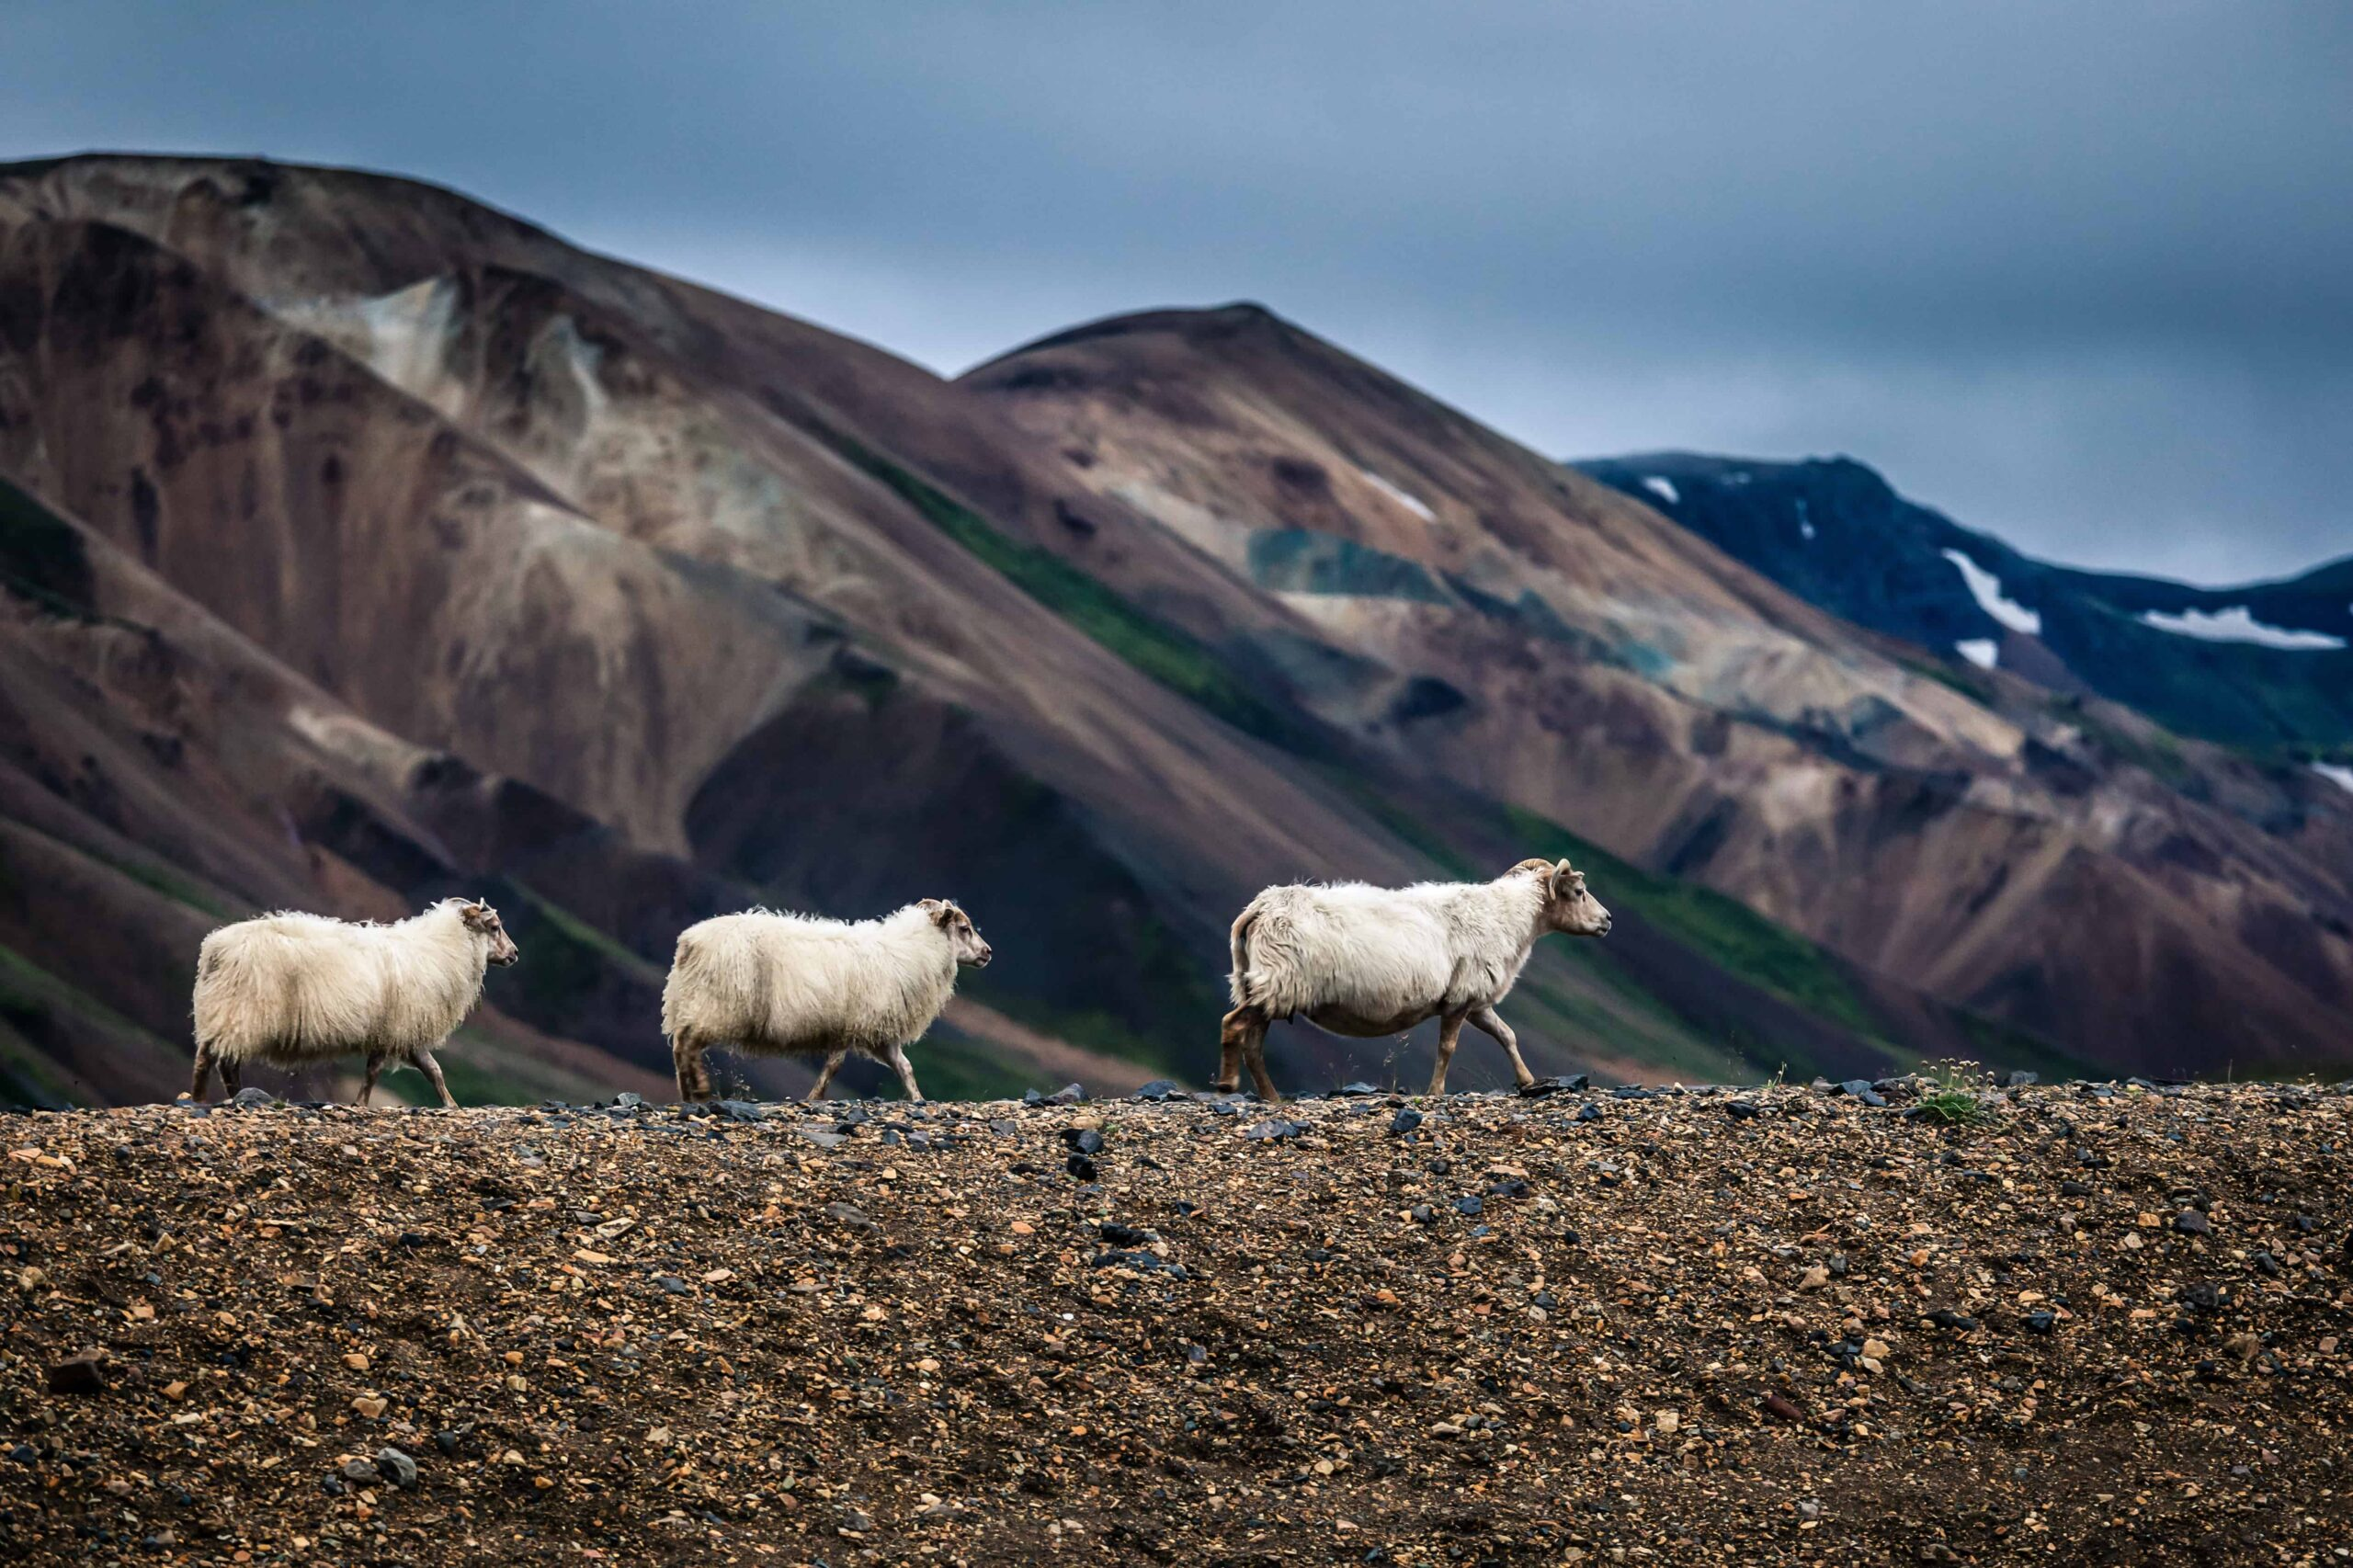 sheep in Landmannalaugar in the highlands of Iceland